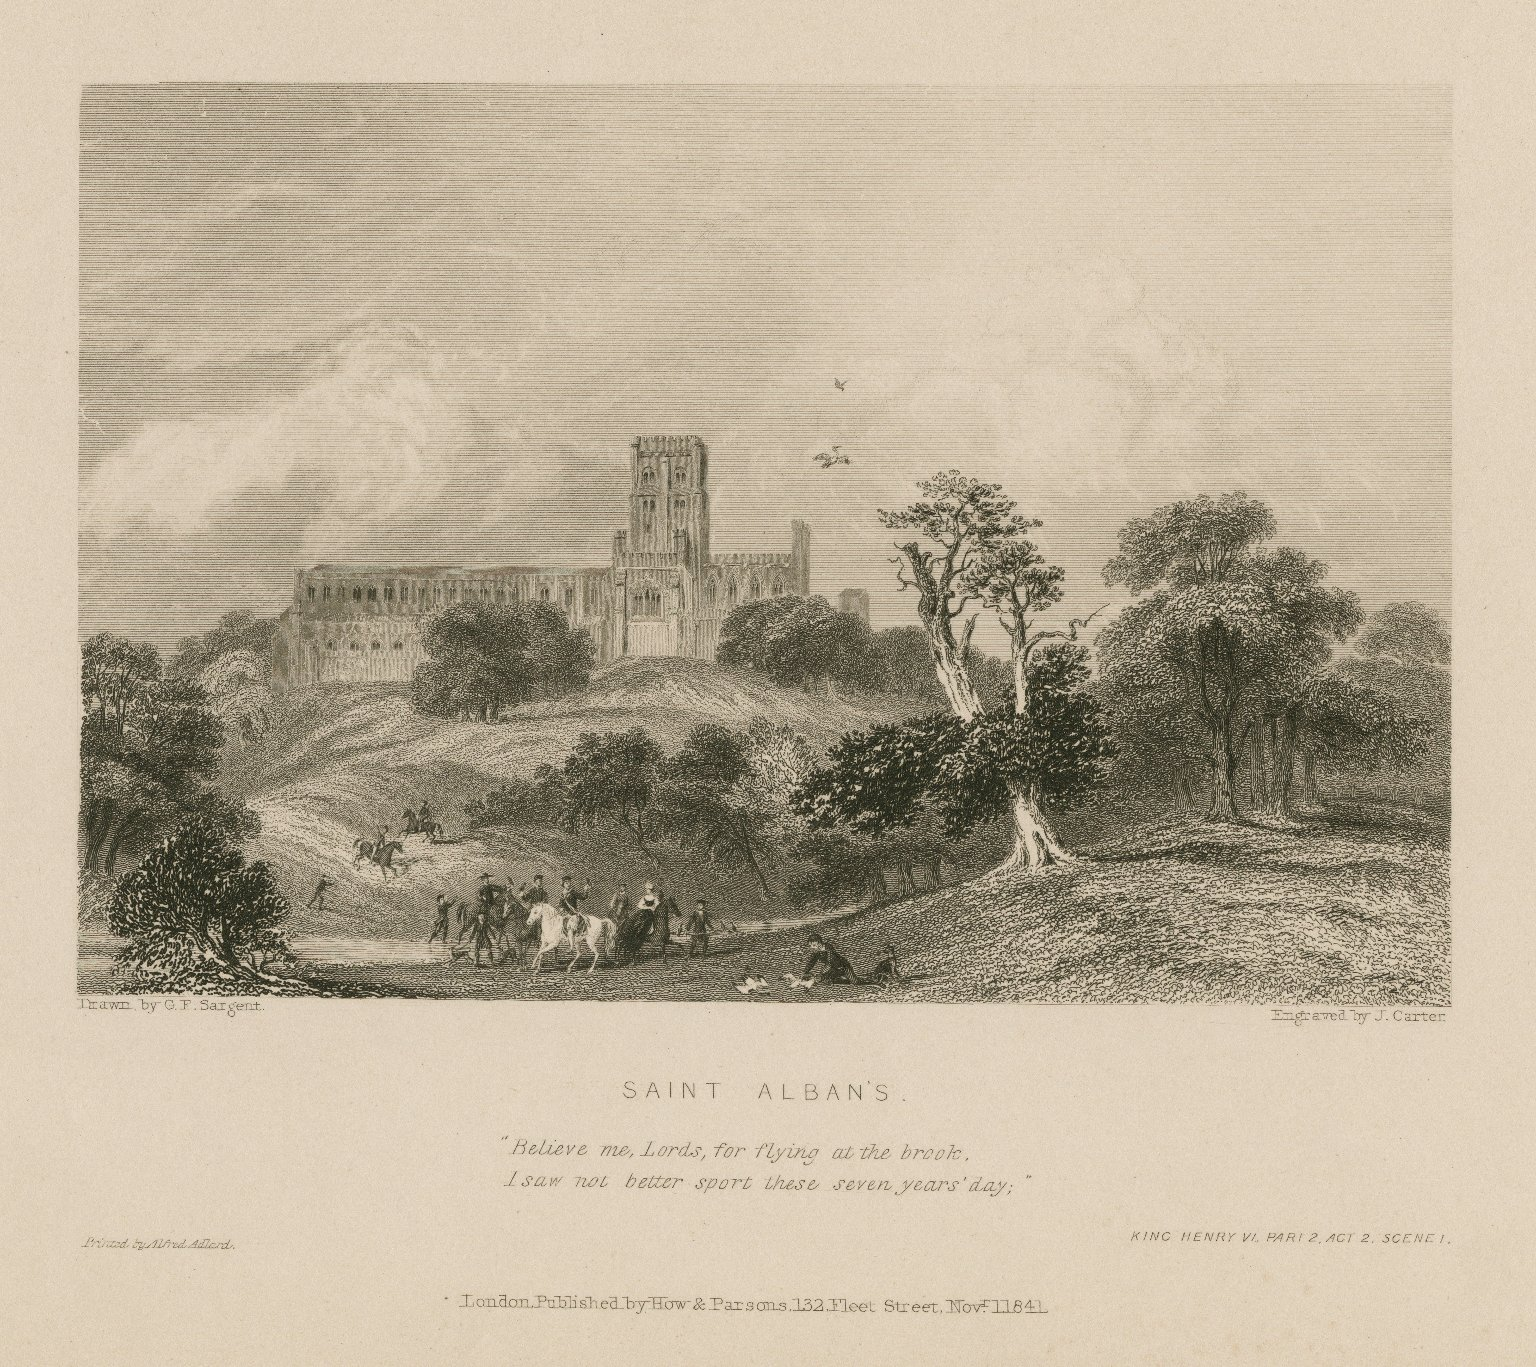 """Saint Alban's, """"Believe me, Lords, for flying at the brook ... """" King Henry VI, part 2, act 2, scene 1 ... [graphic] / drawn by G.F. Sargent ; engraved by J. Carter."""